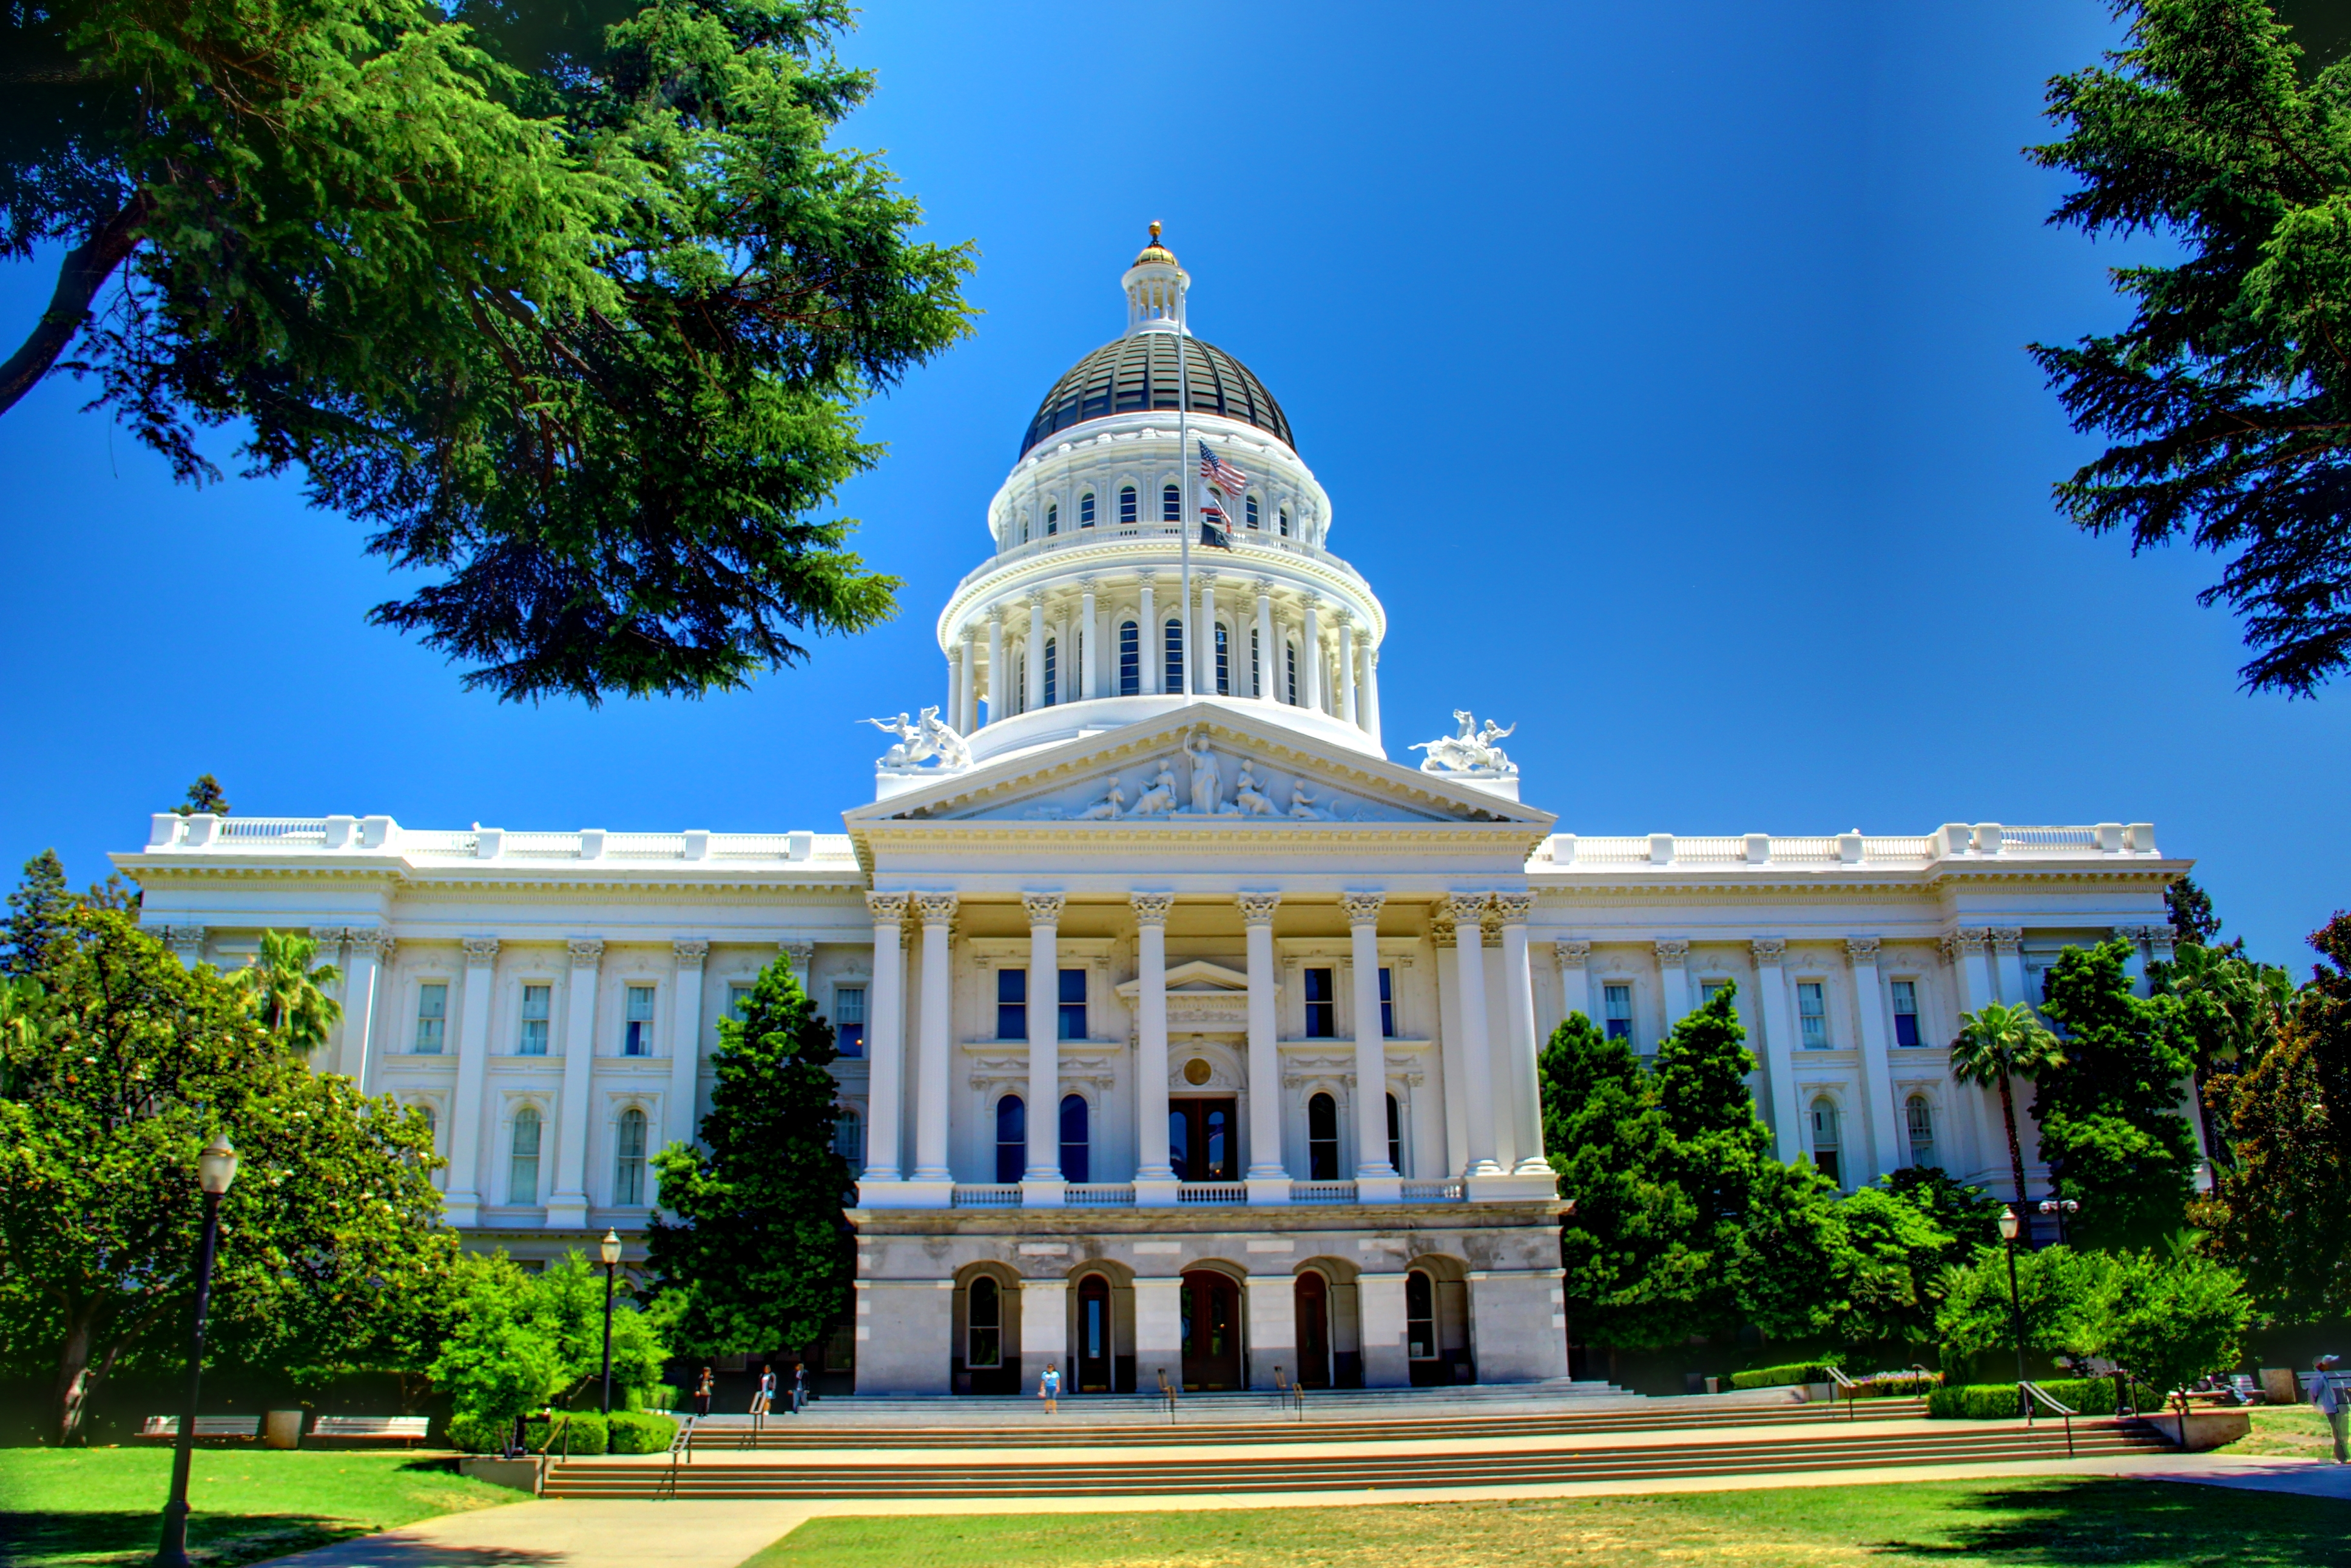 California_State_Capitol_Building_-_Full_Front_Facade